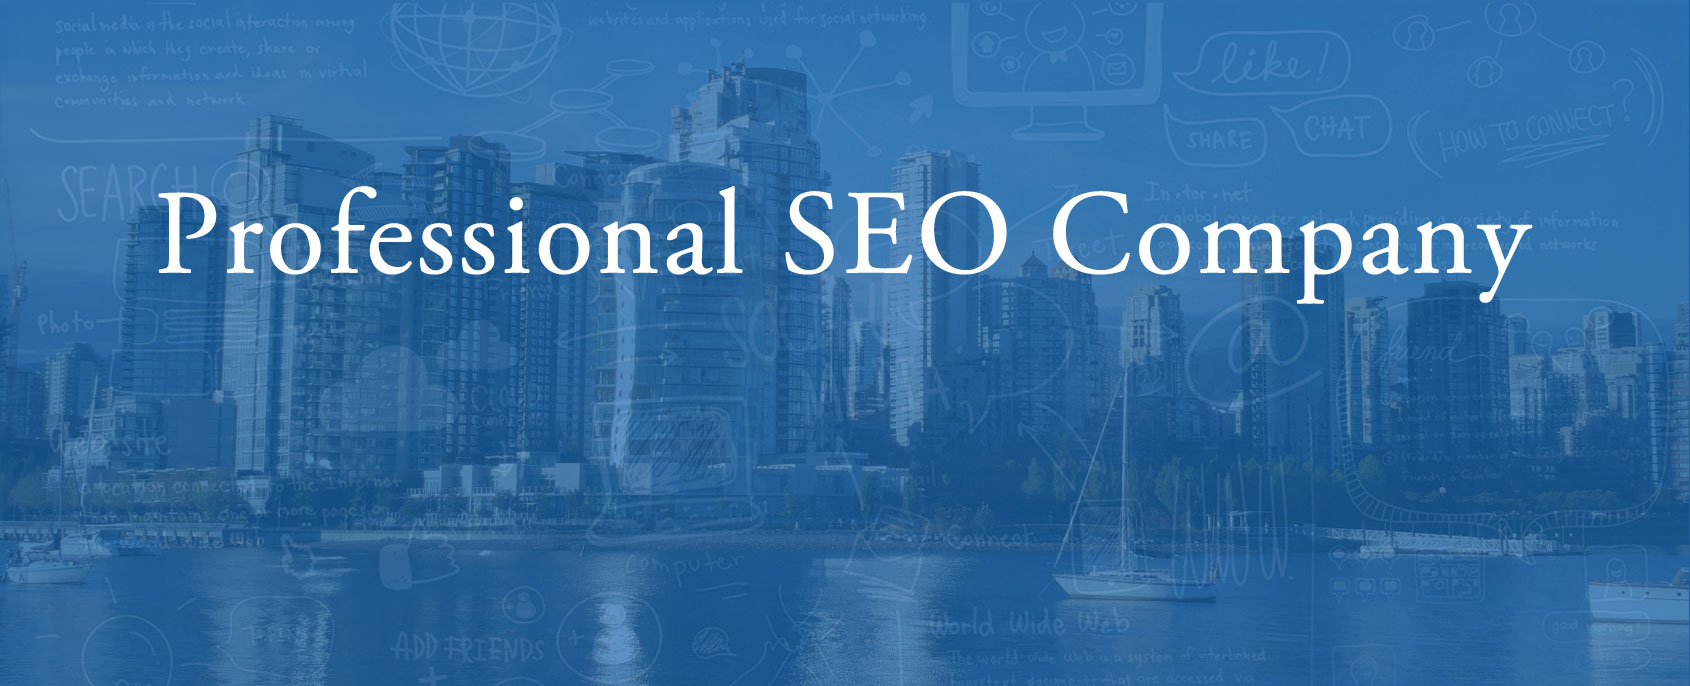 What Makes Professional SEO Company Different Than Traditional SEO Company?